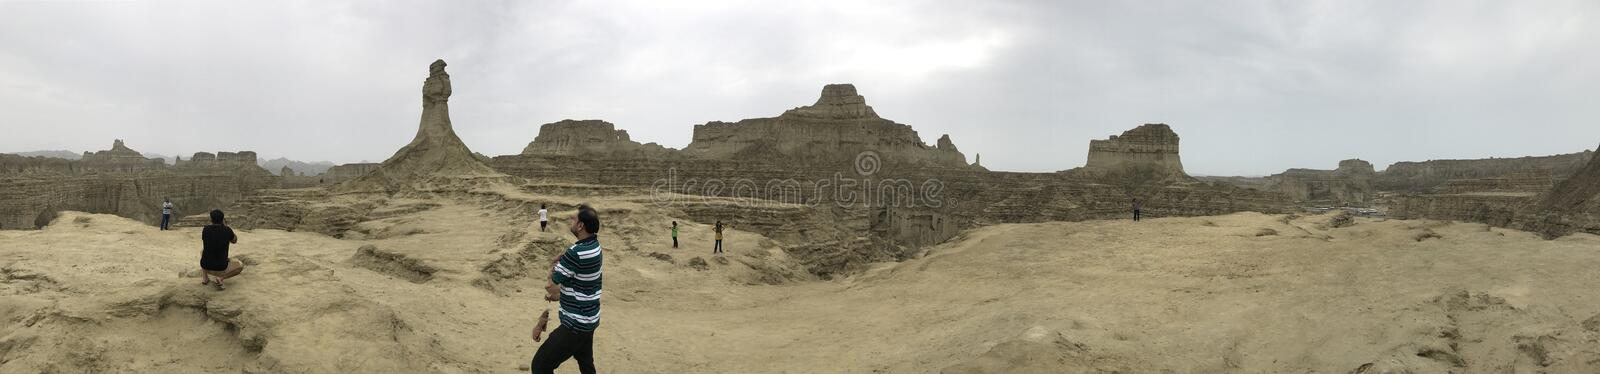 360 Panorama View Princess of Hope and Great Sphinx Hingol National Park stock photo